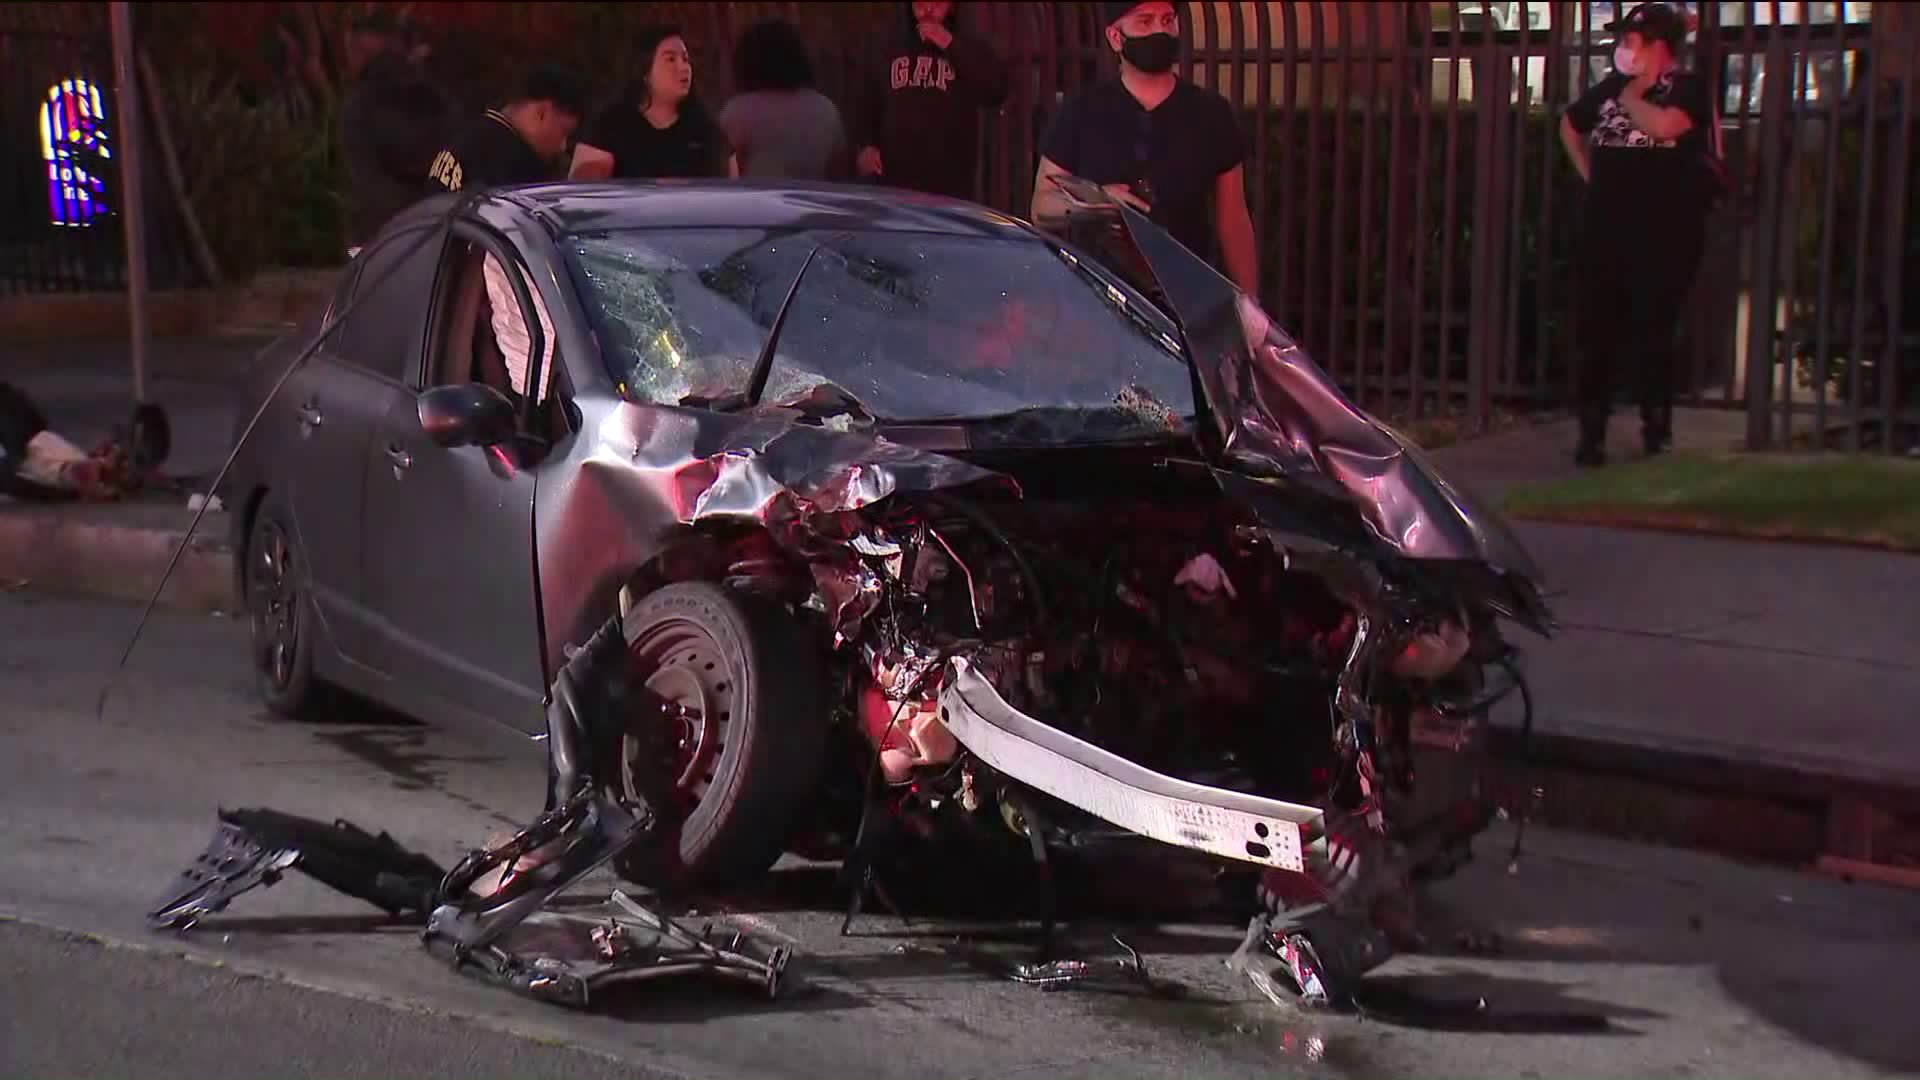 Six people were involved in a collision in the Green Meadows neighborhood of Los Angeles on July 27, 2020. (KTLA)